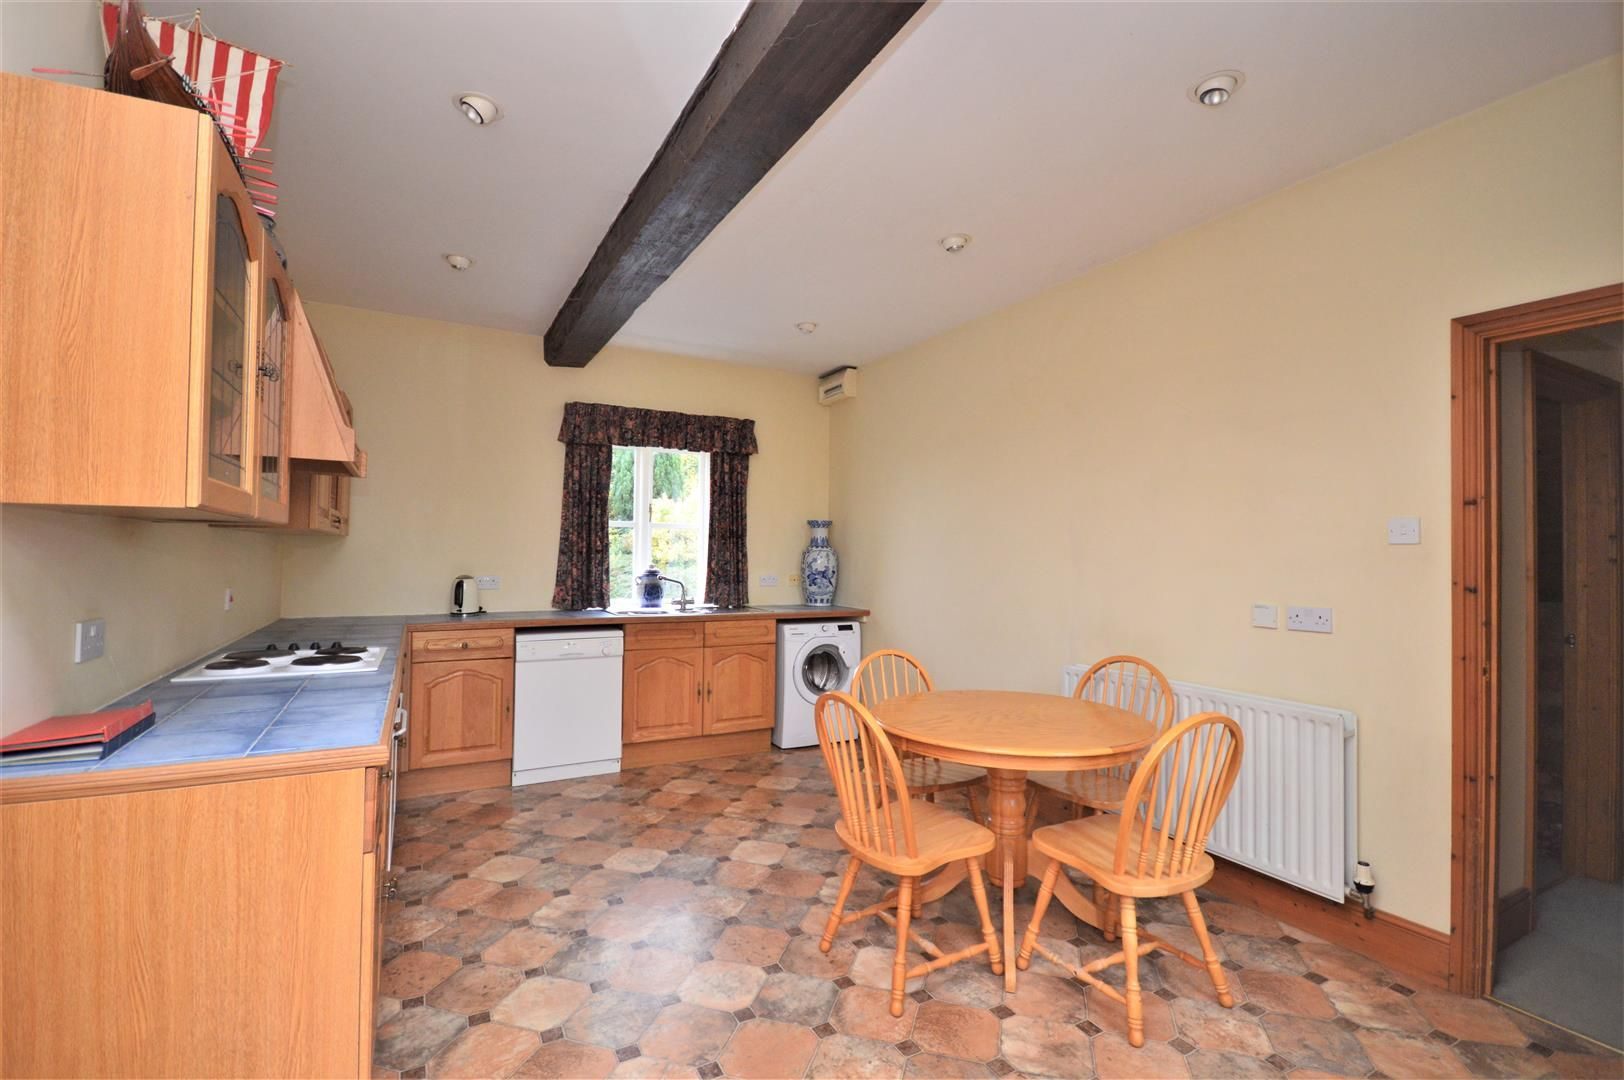 4 bed semi-detached for sale in Nr Madley 3